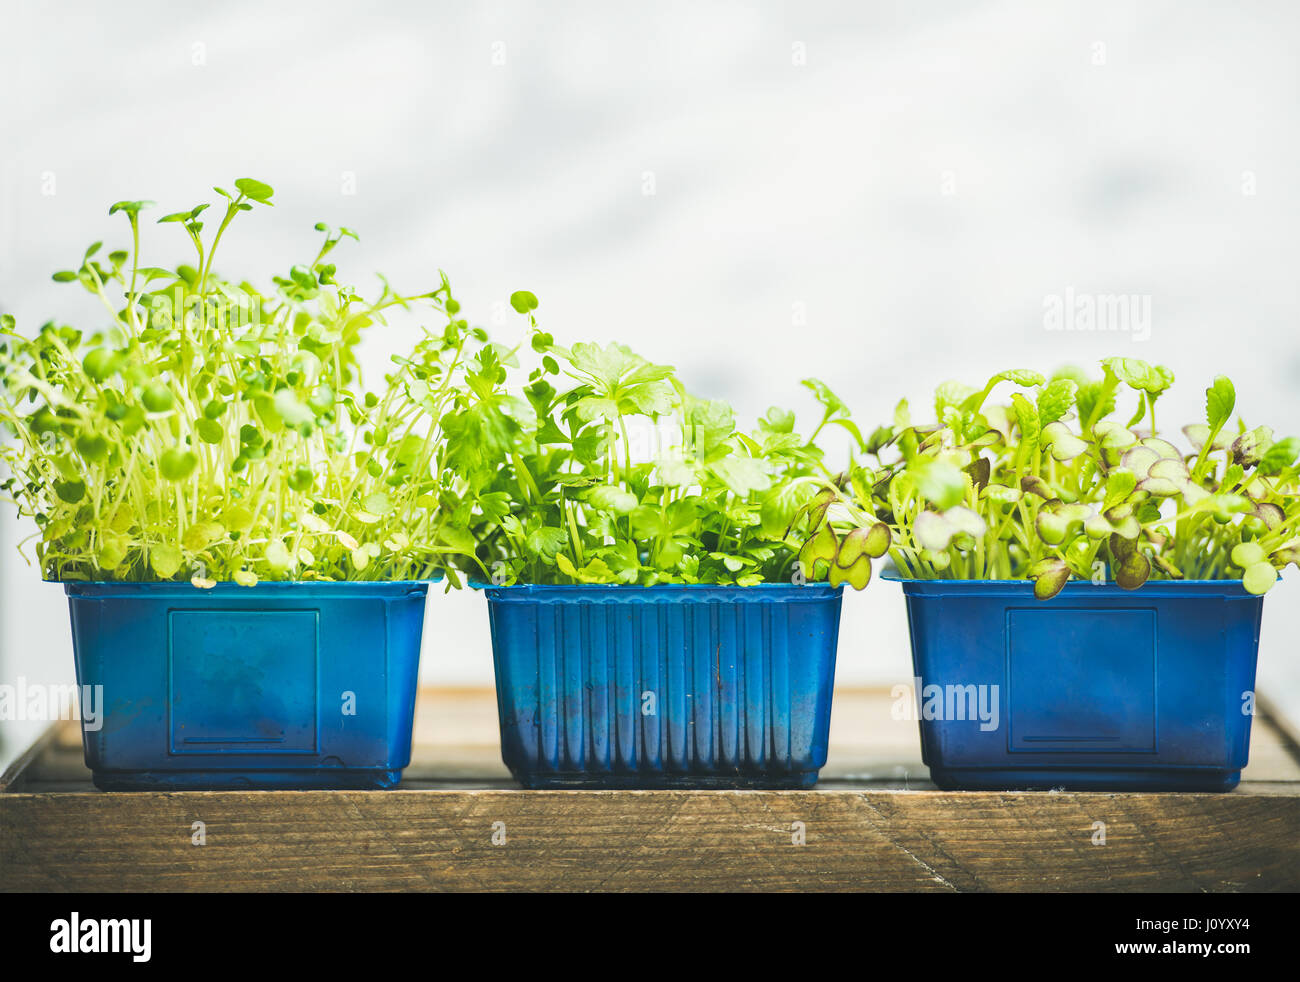 Radish kress, water kress and coriander sprouts in blue pots - Stock Image